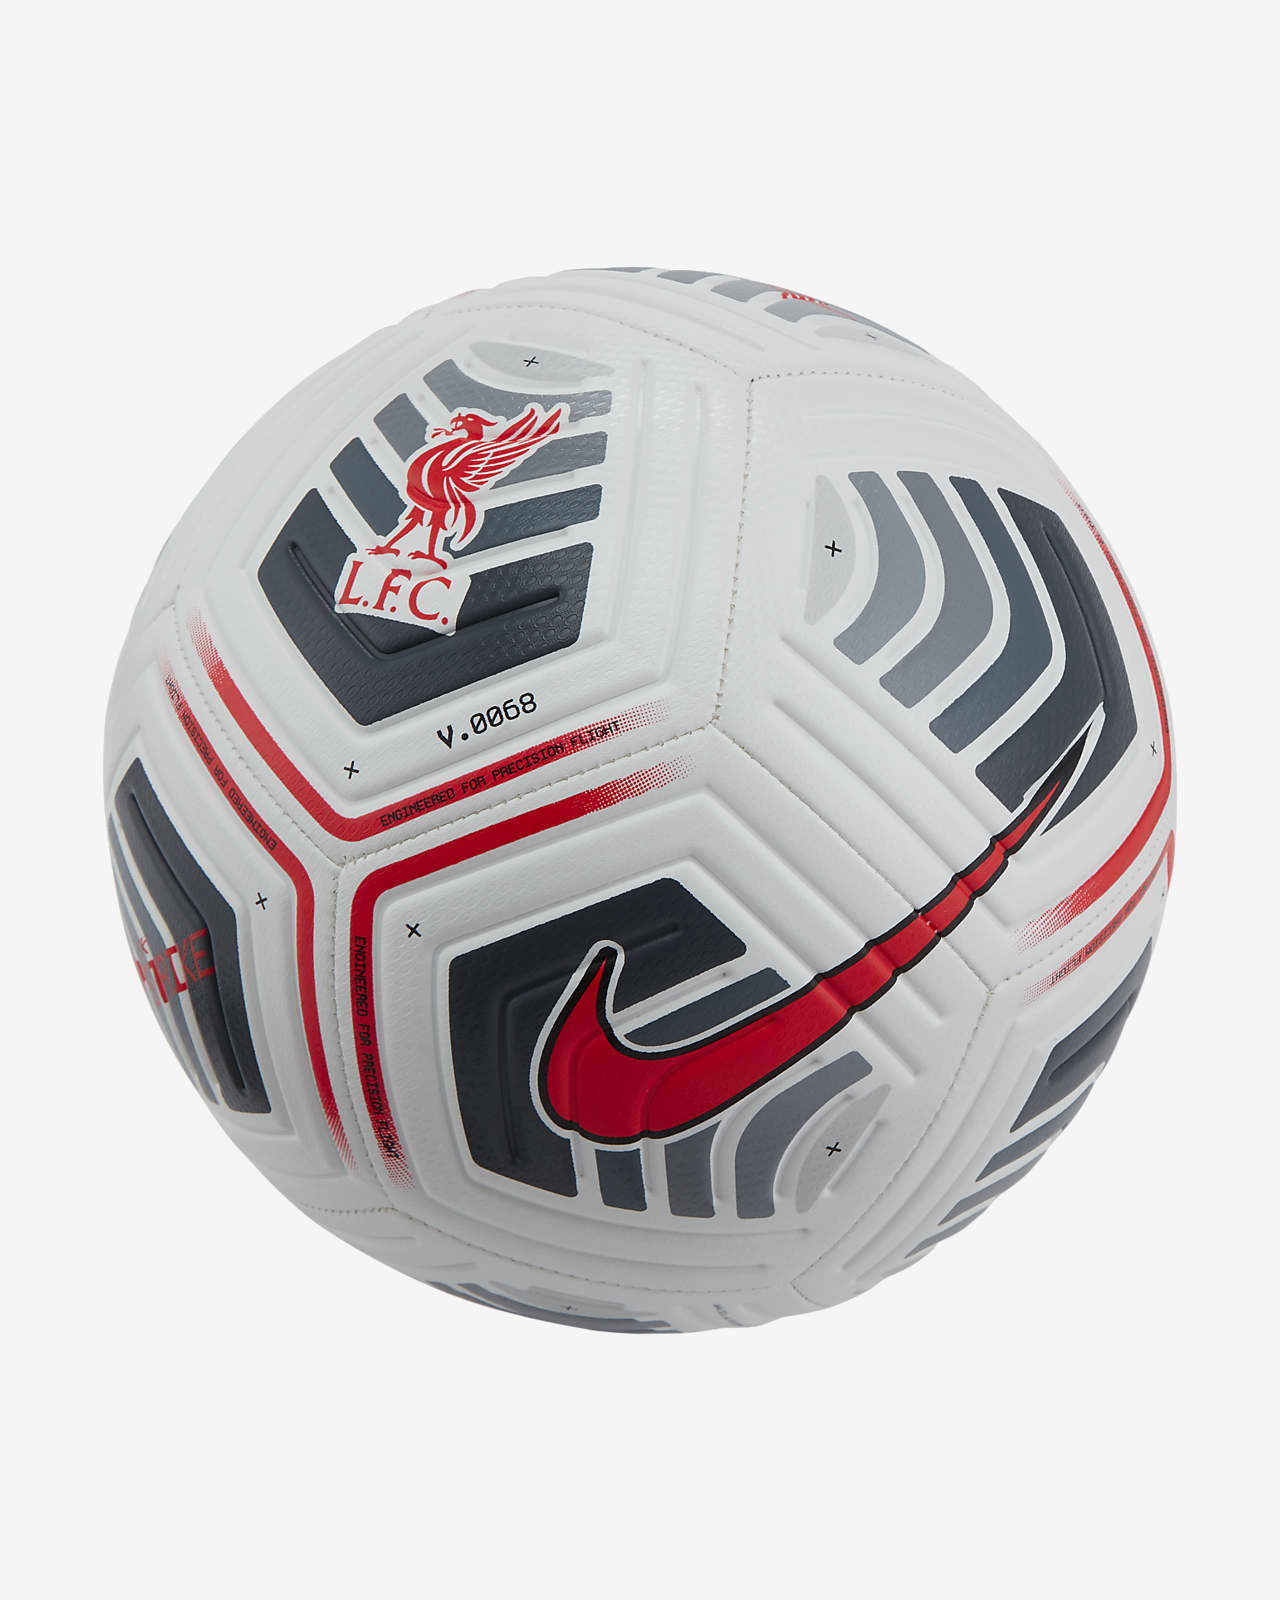 Liverpool FC Soccer Ball